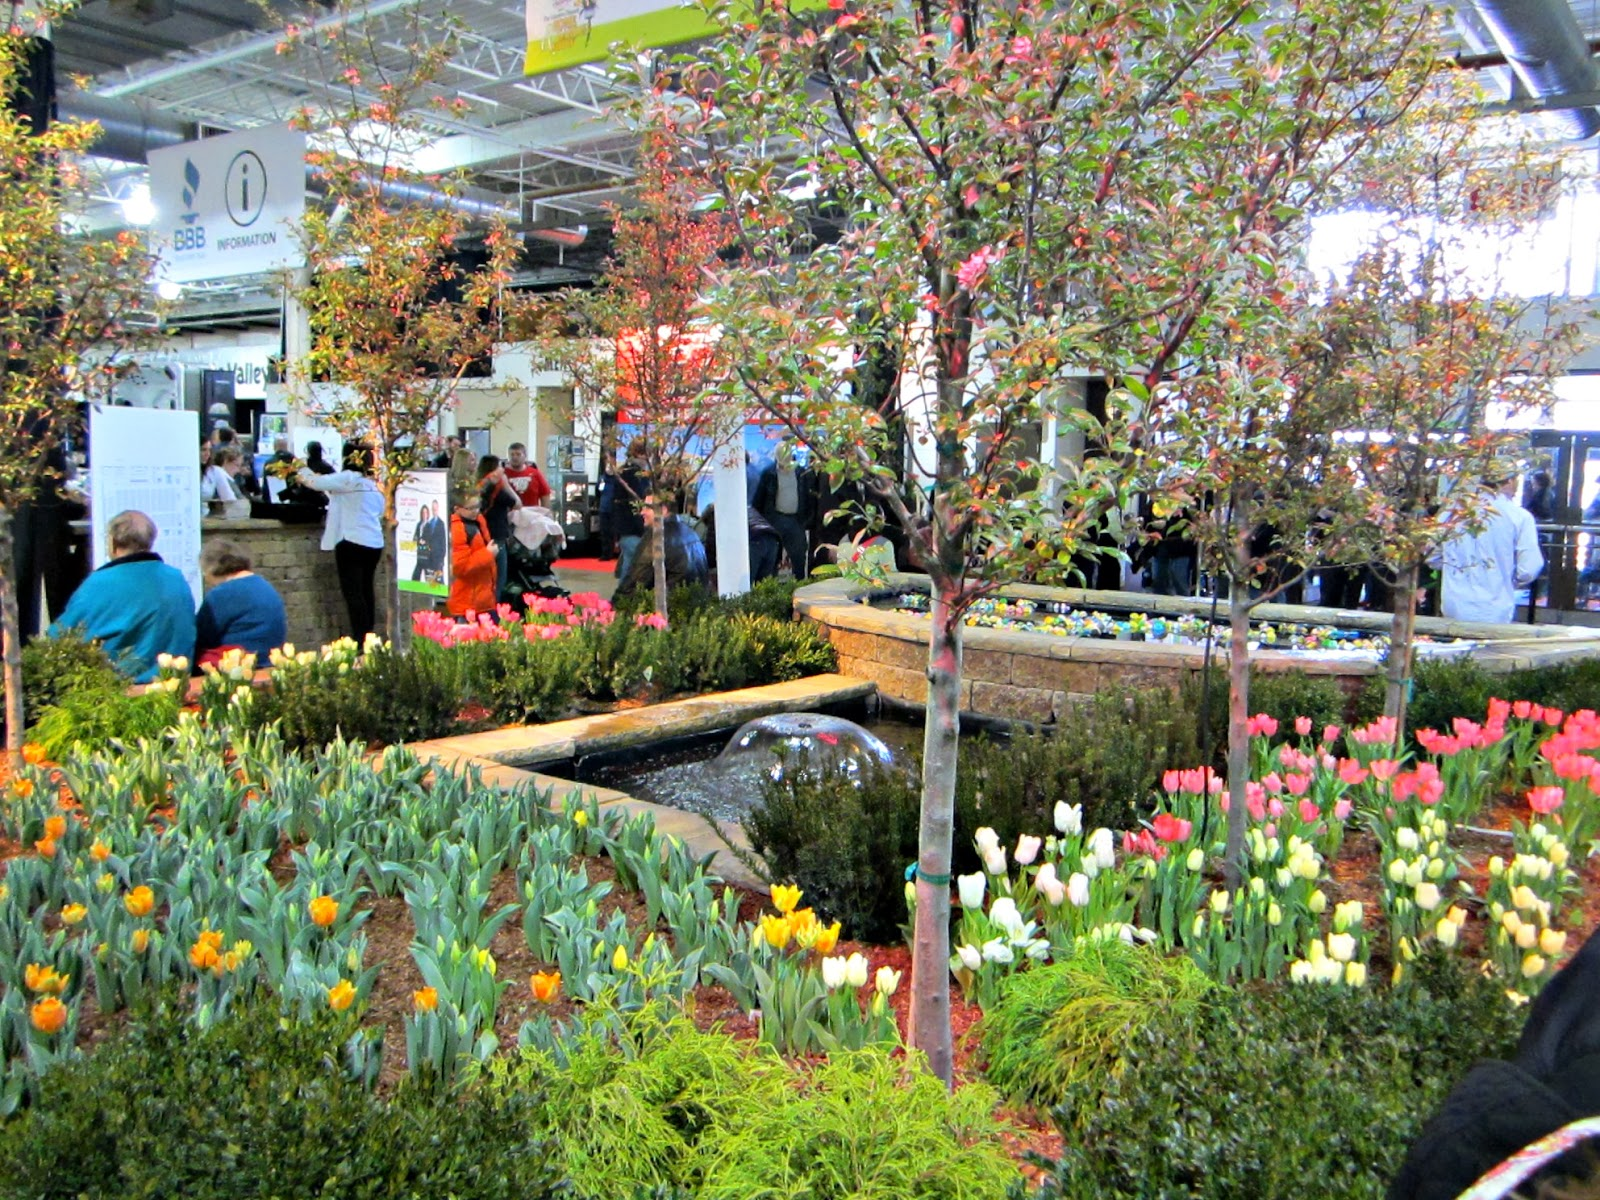 Beau Last Weekend, Kenneth And I Went To The Home U0026 Garden Show At The Ohio Expo  Center. It Was Refreshing To Be Around Plants   It Looked Like A Well  Manicured ...